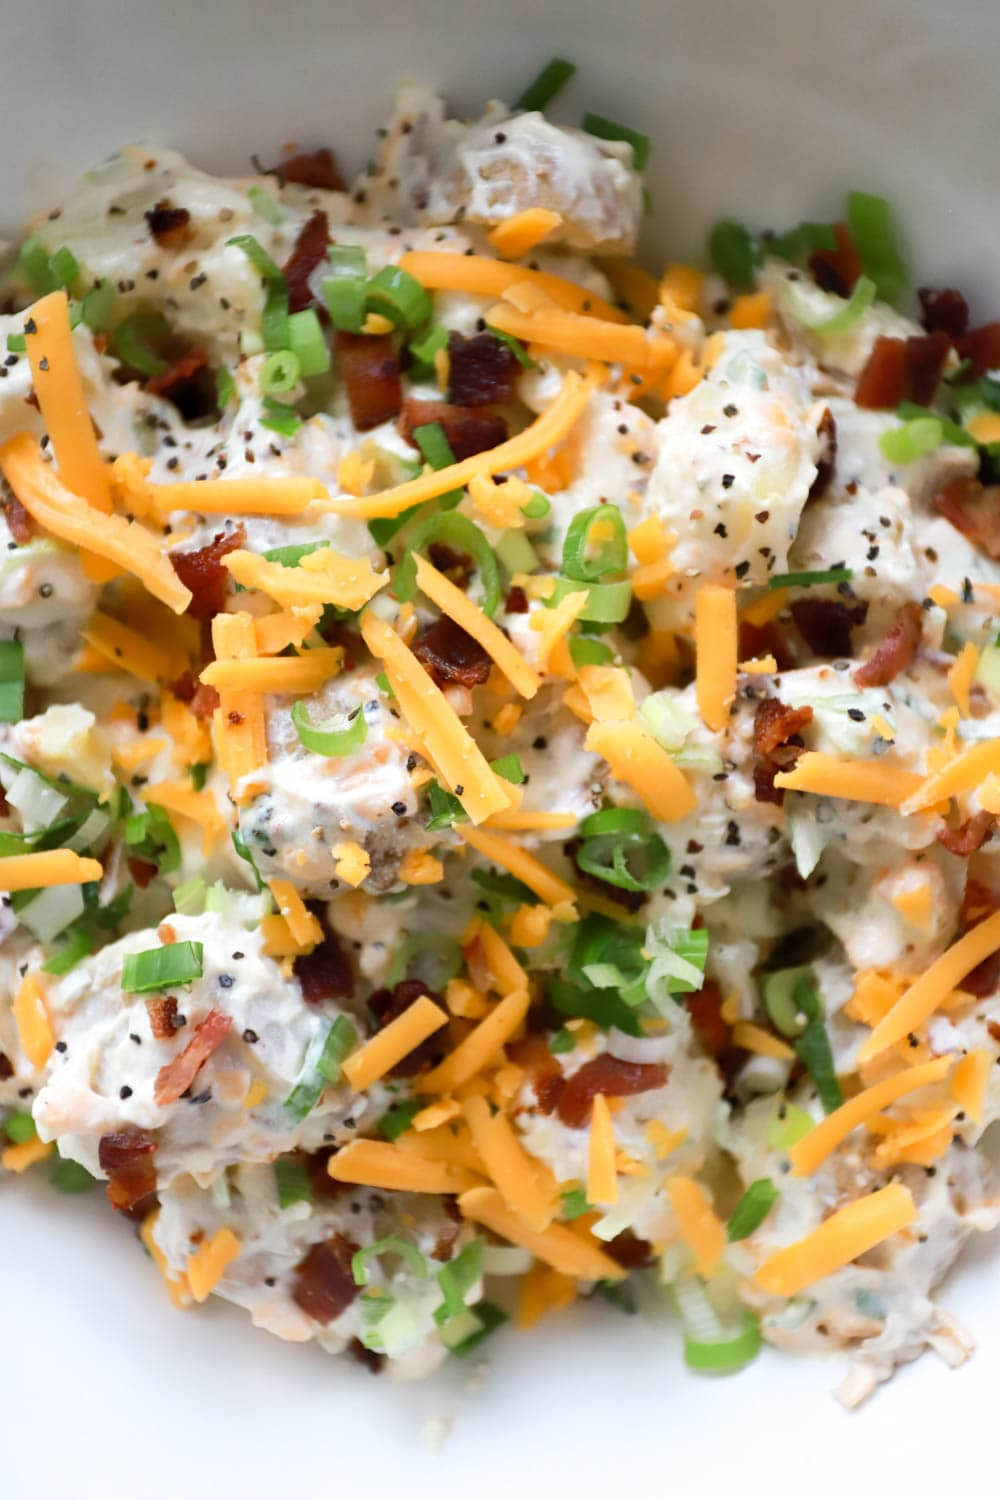 How to make Loaded Baked Potato Salad recipe from funnyloveblog.com